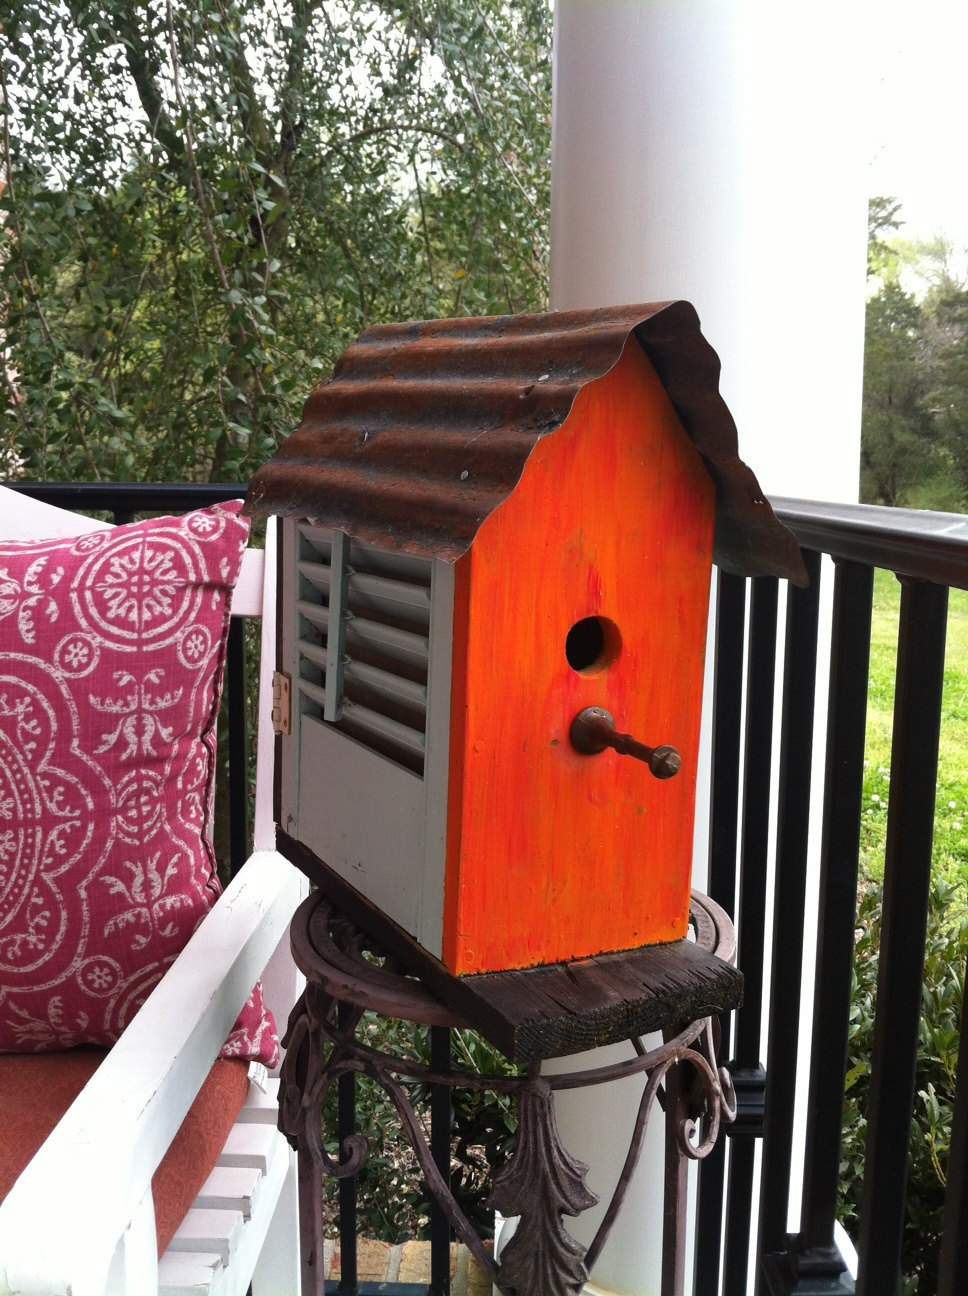 Tangerine Birdhouse with Teal Shutters Upcycled Recycled Shabby Folk Art Wood